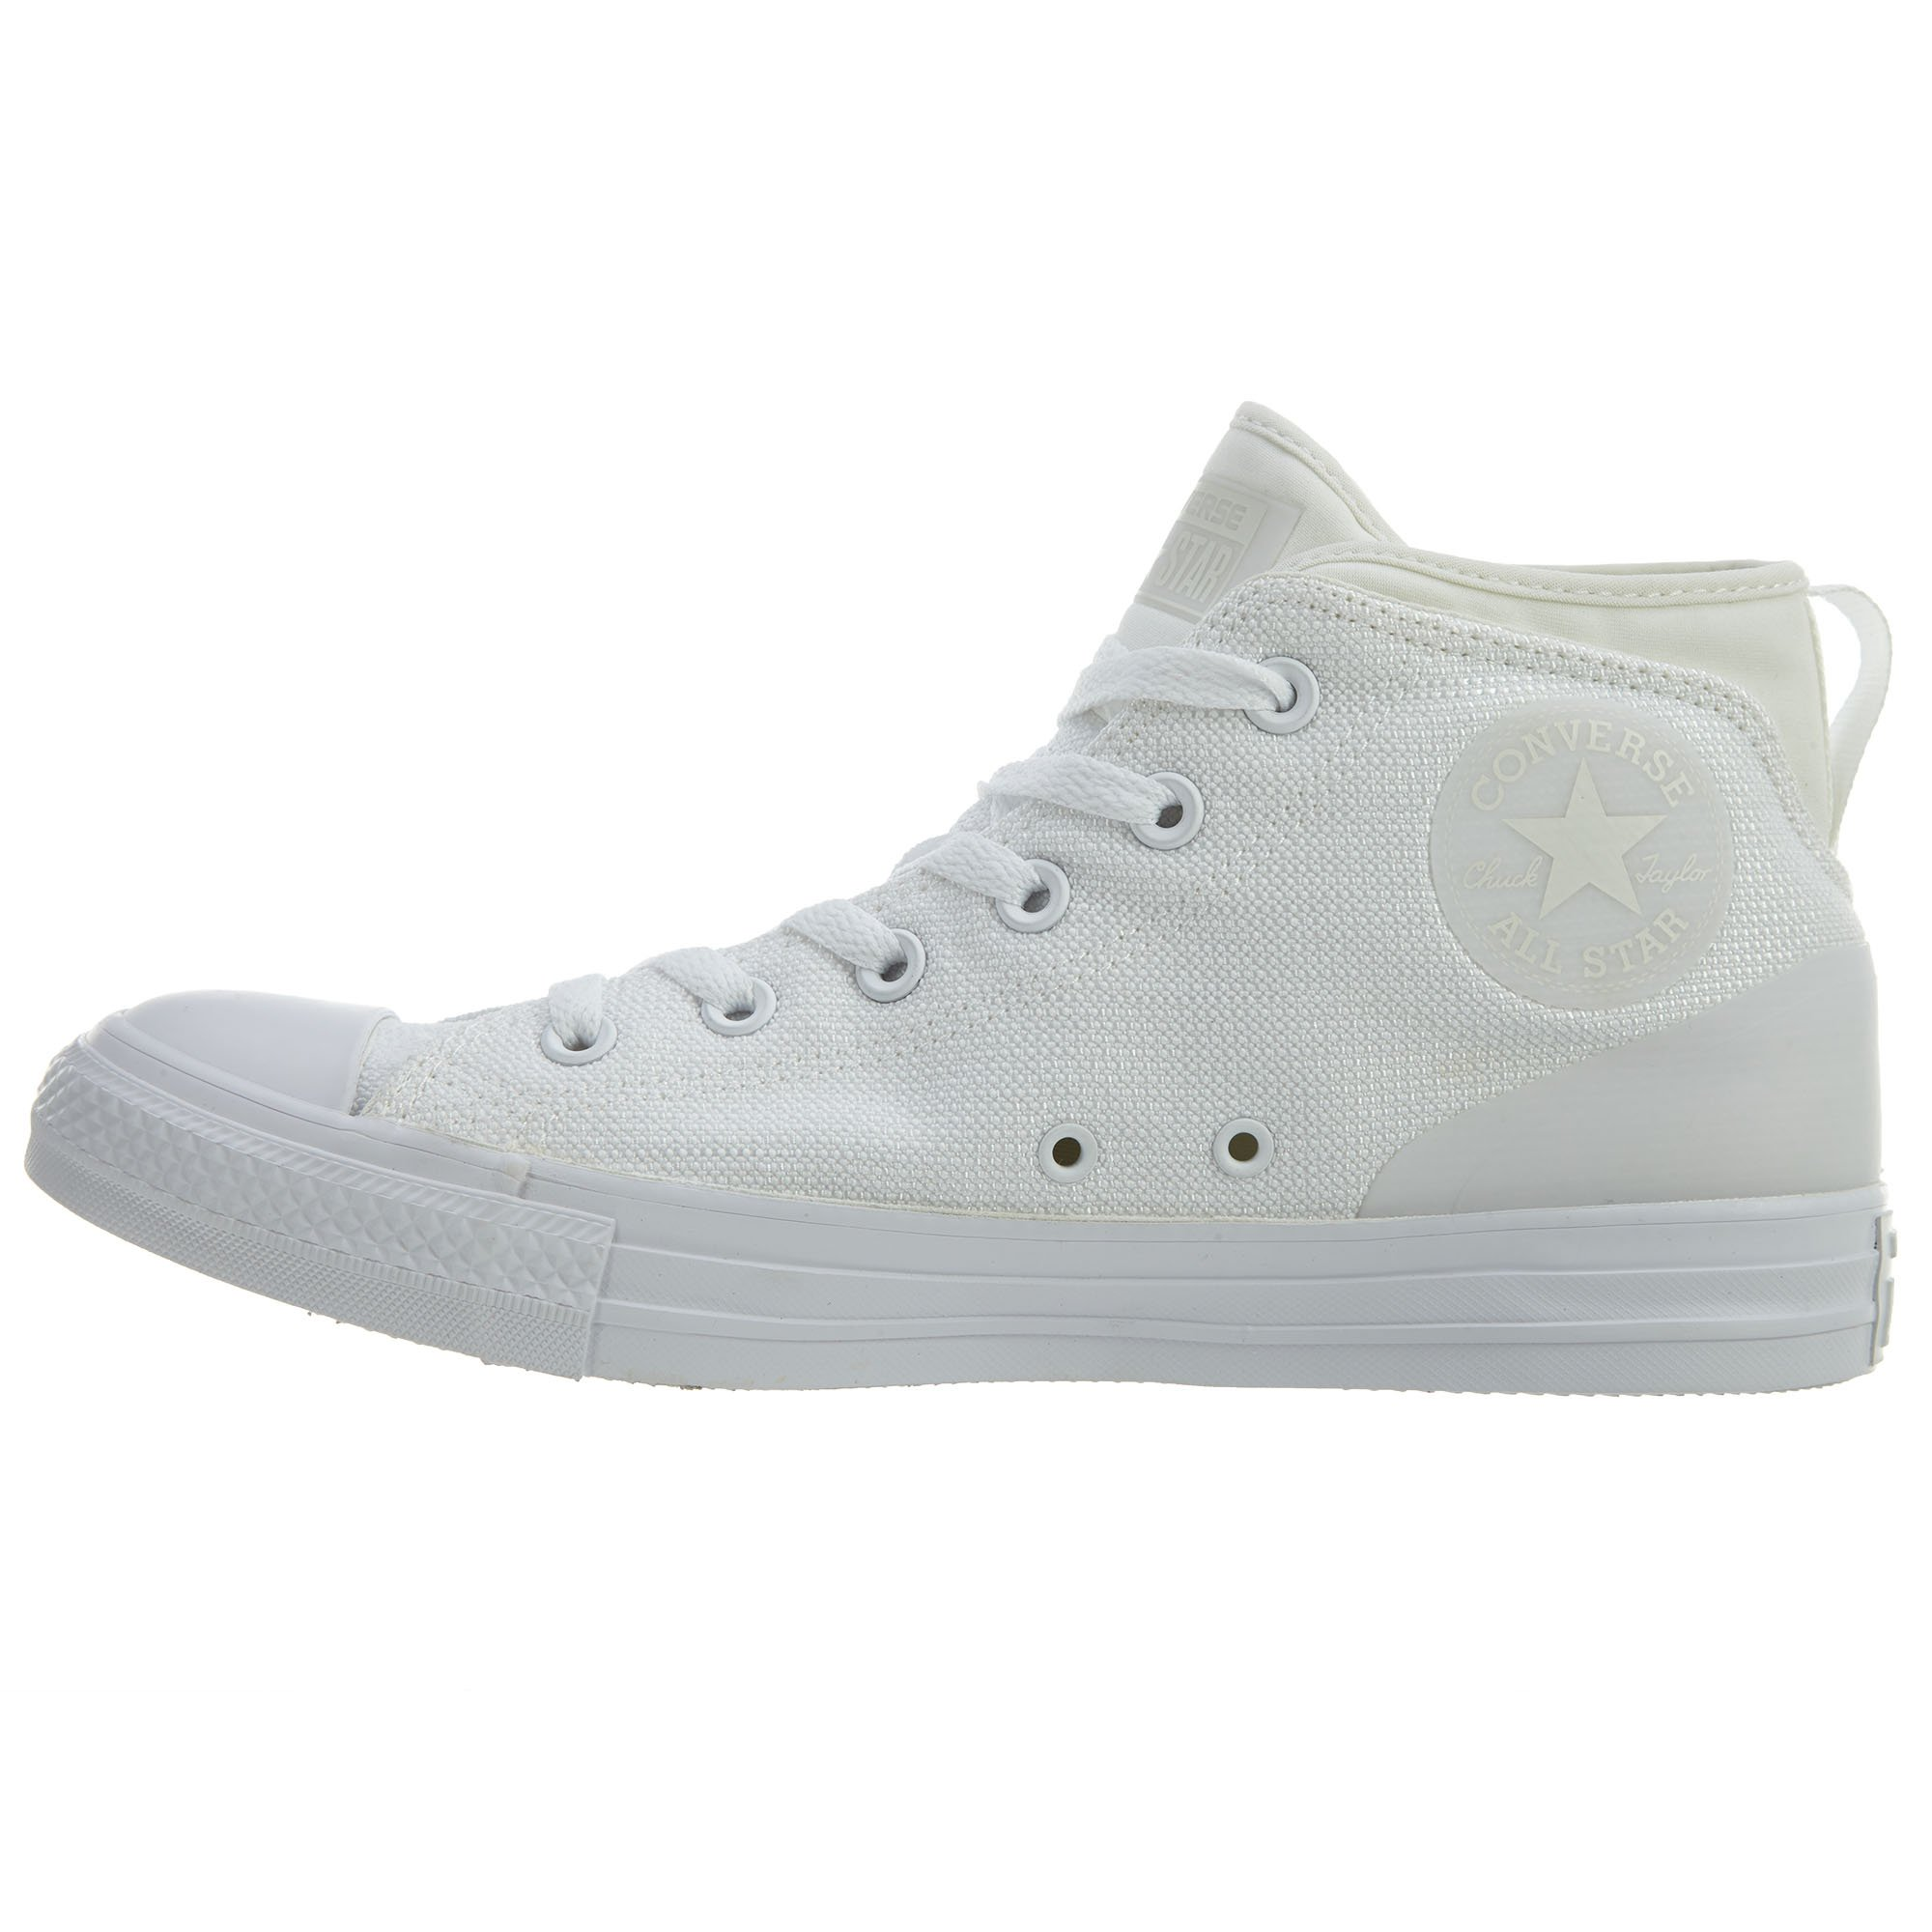 White All Star Street Converse Scarpa Mid Syde 7PBWYgd